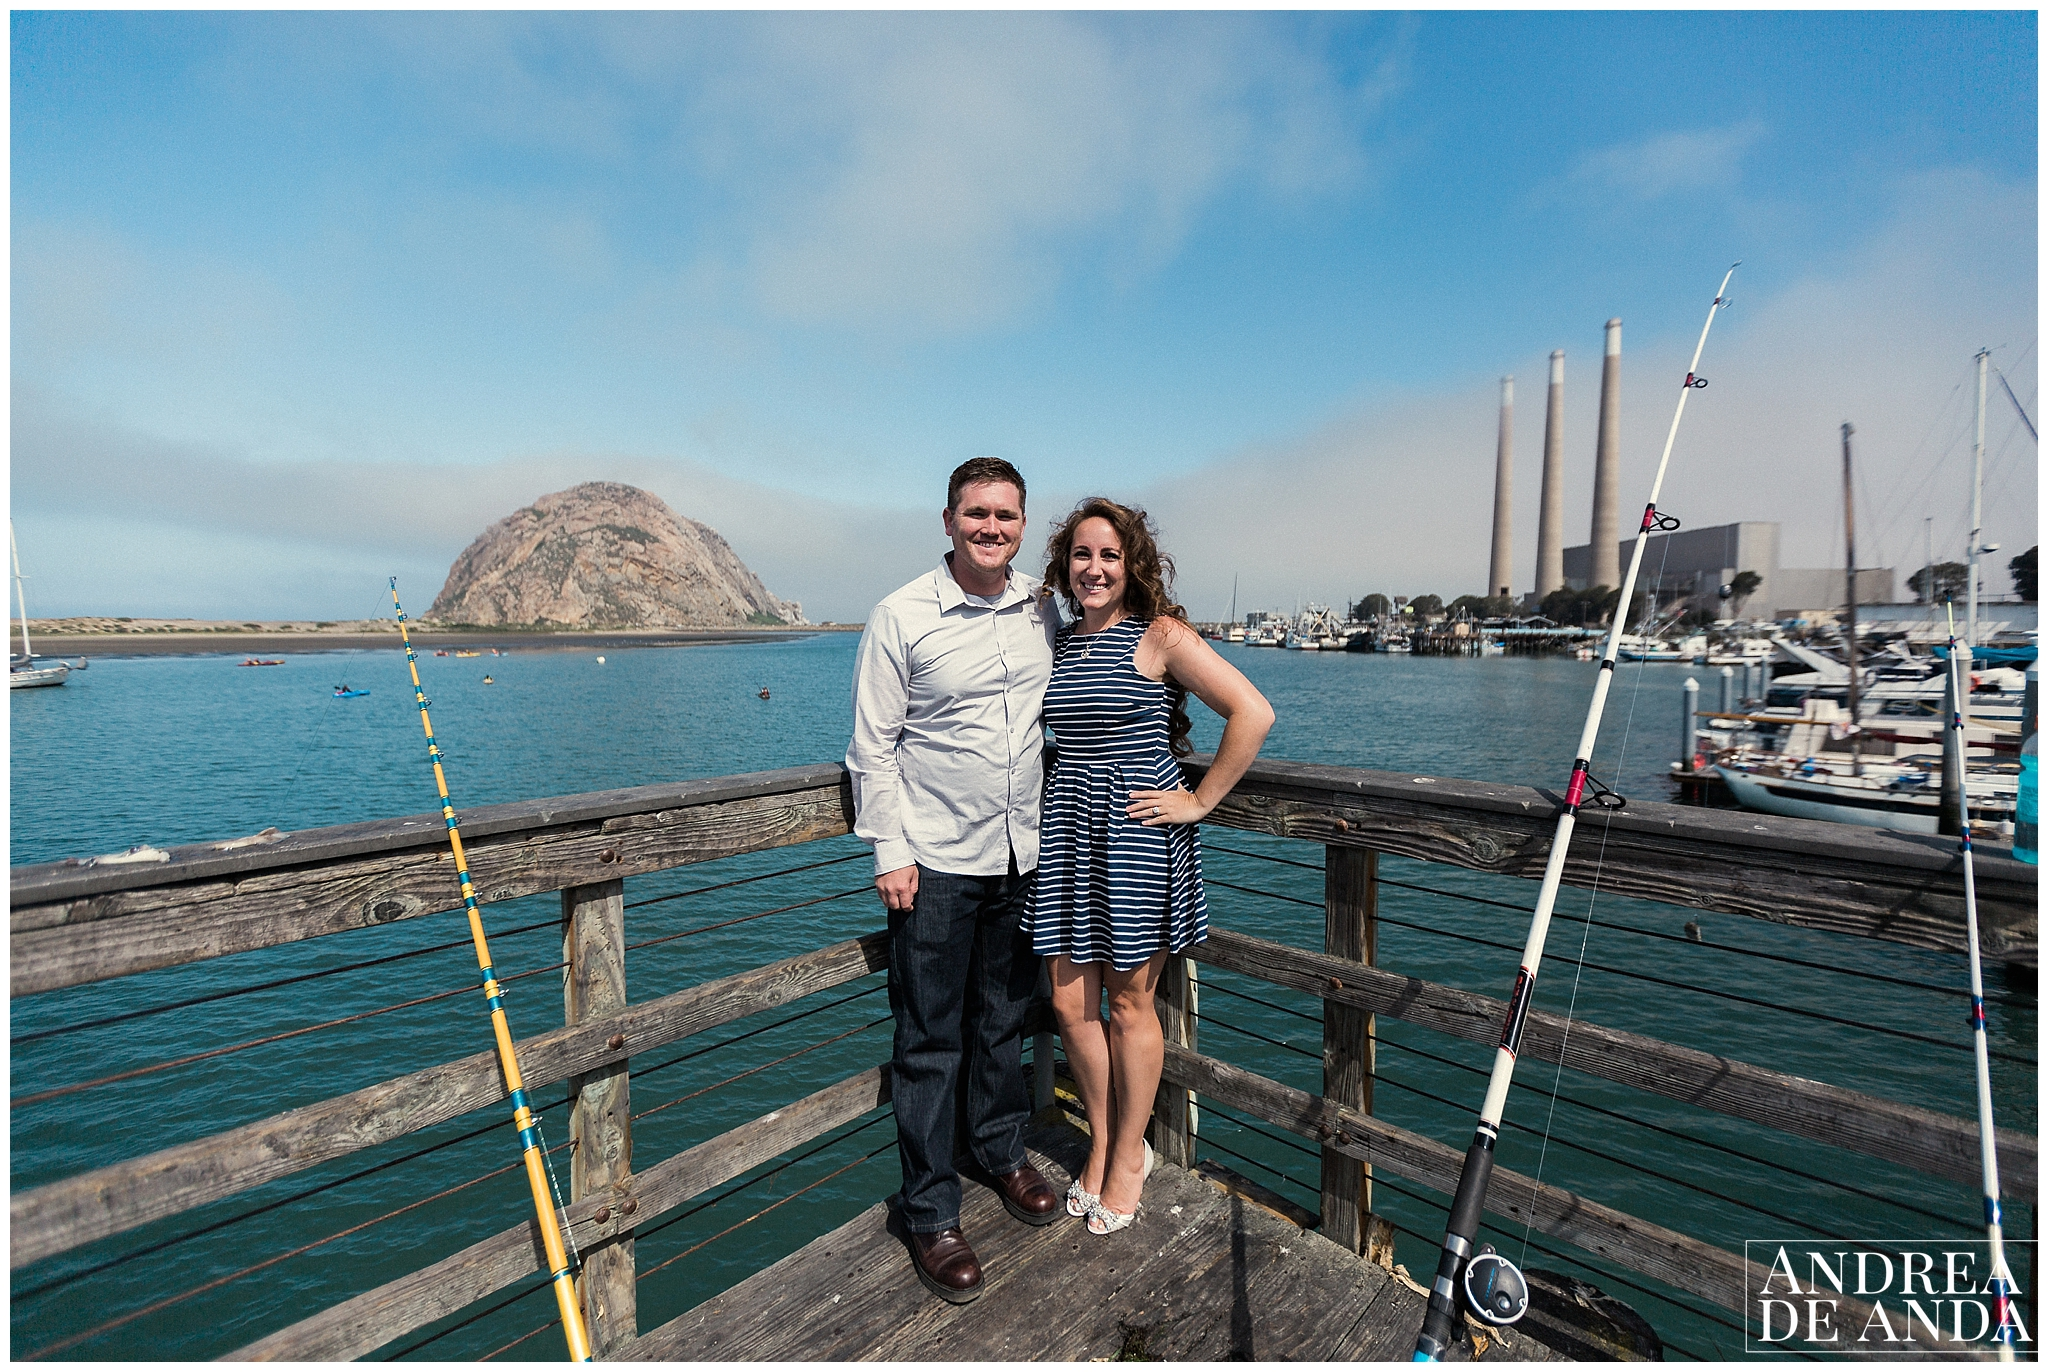 we recreated this image from their wedding, it was perfect with the Morro Rock to the left and the towers to the right ! oh yes and there was some fishing going on there !